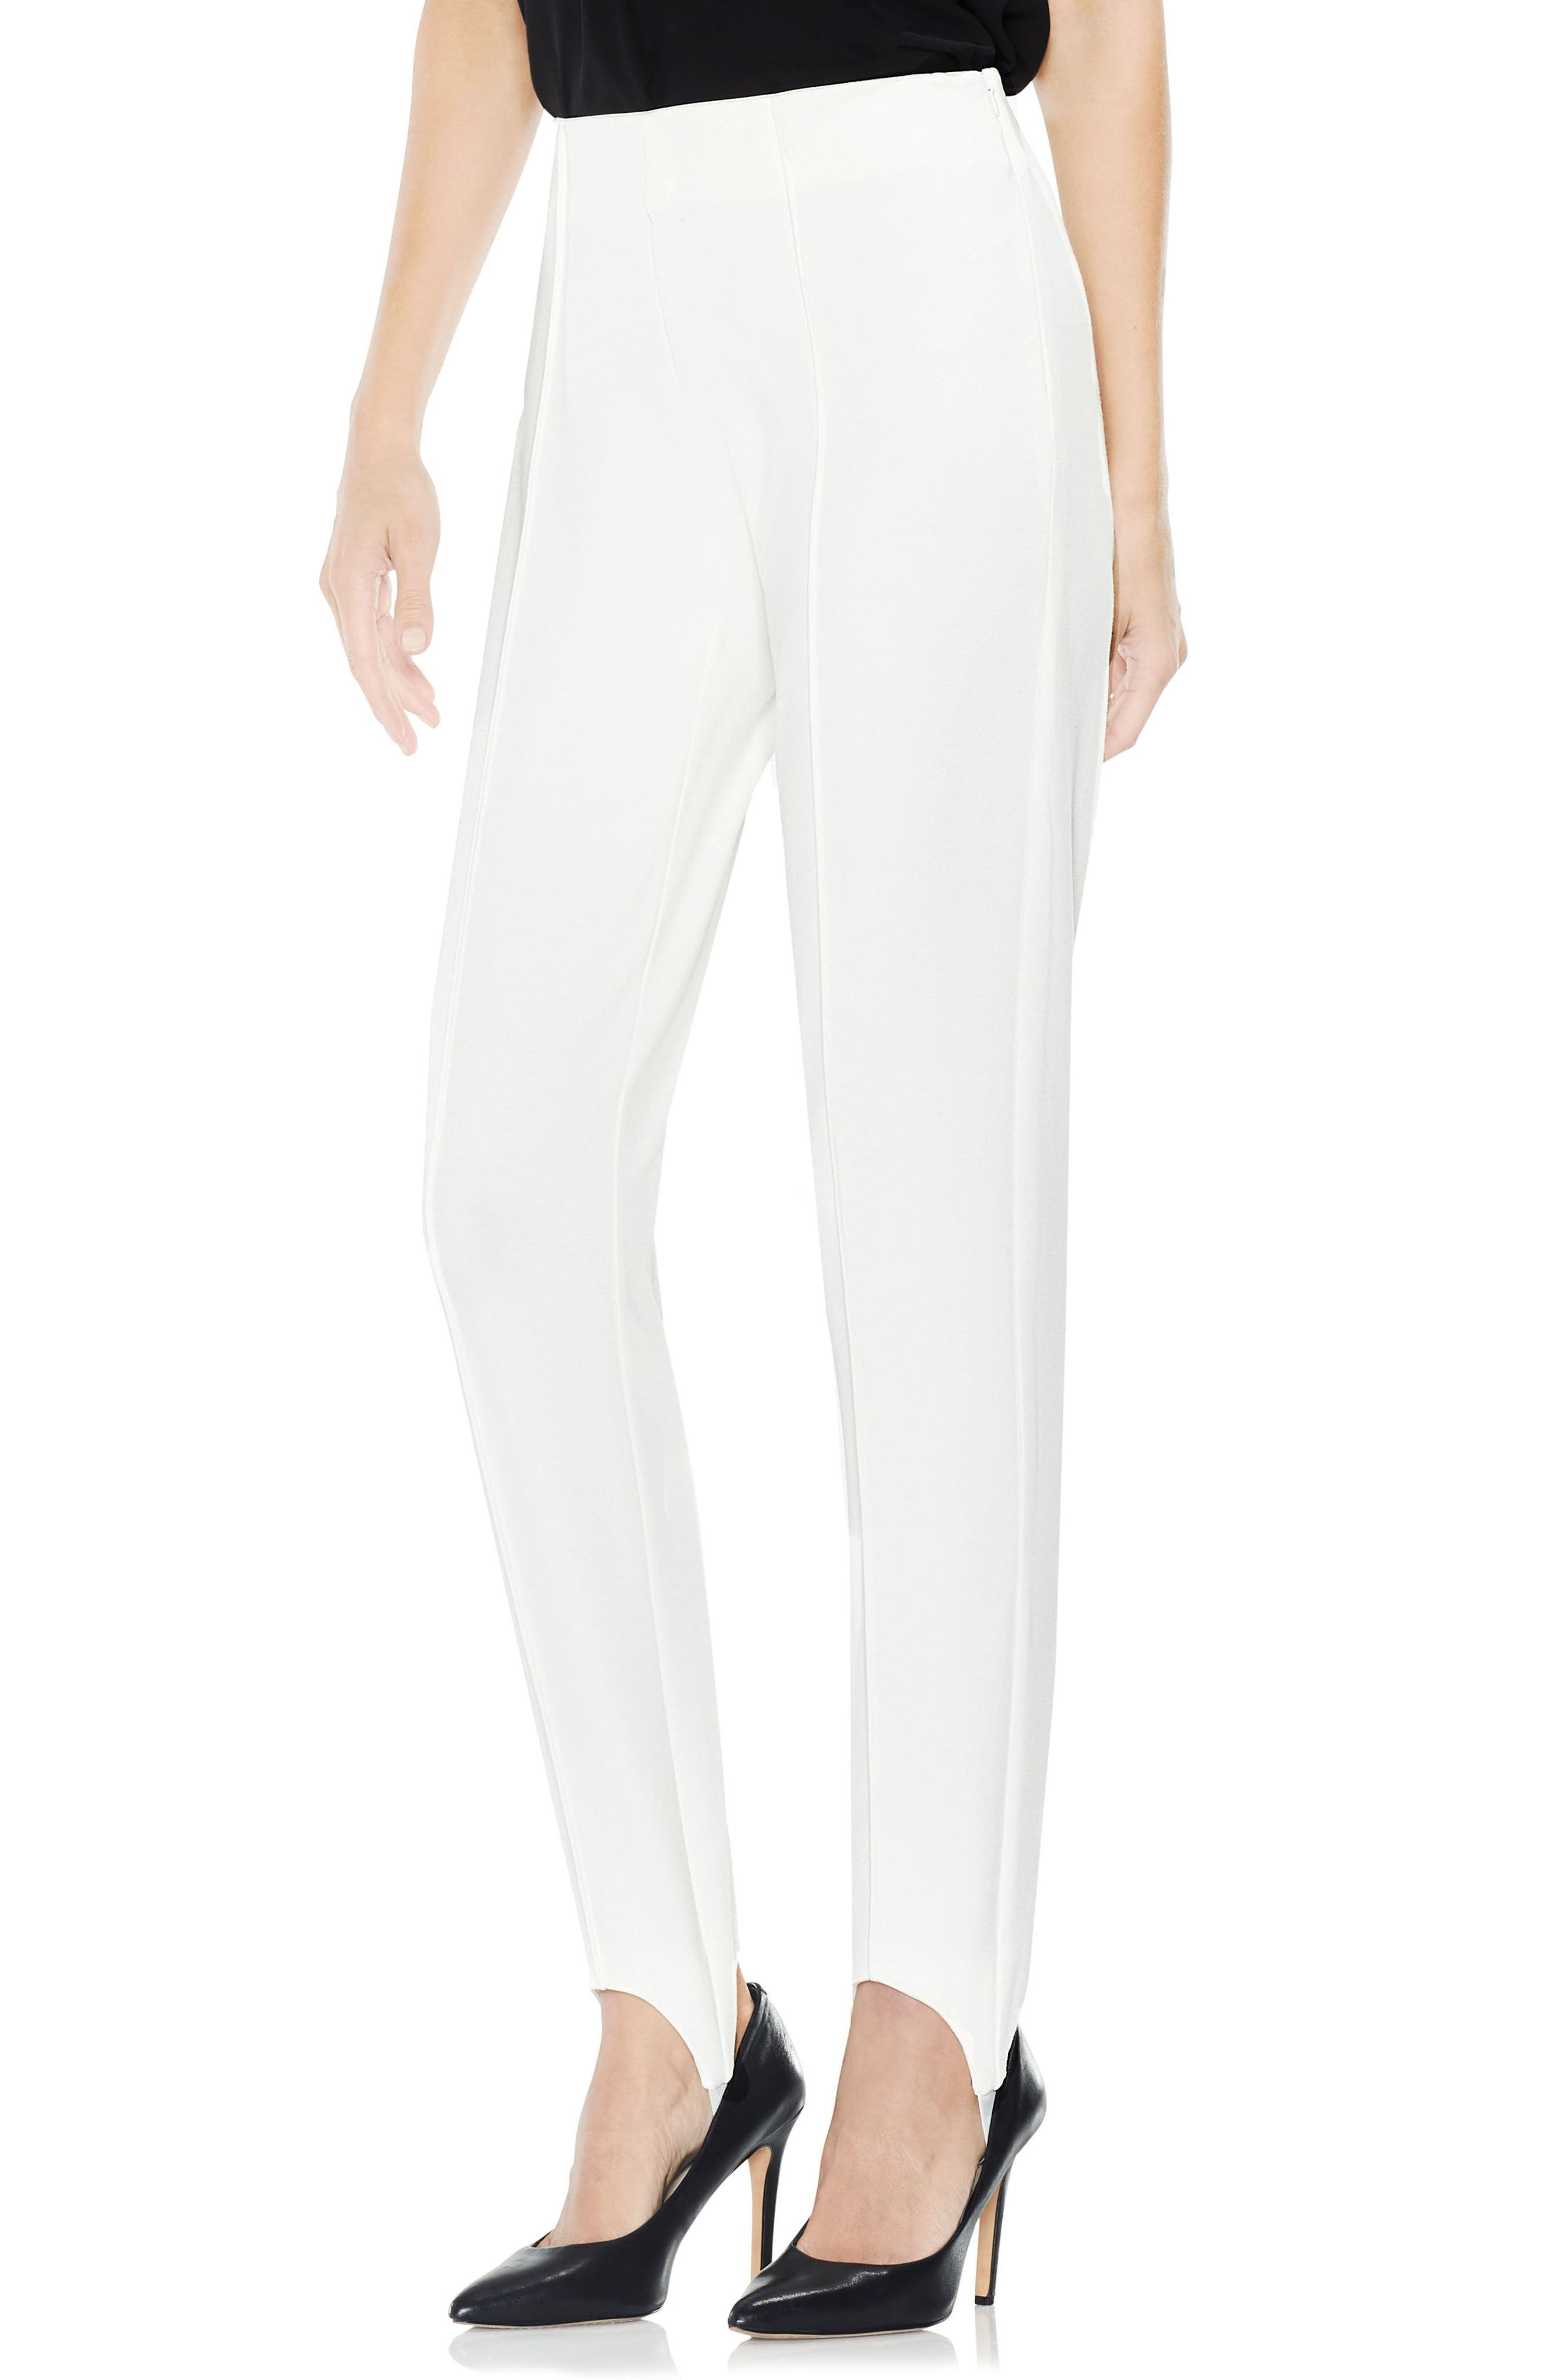 Main Image - Vince Camuto Stirrup Side-Zip Ponte Pants